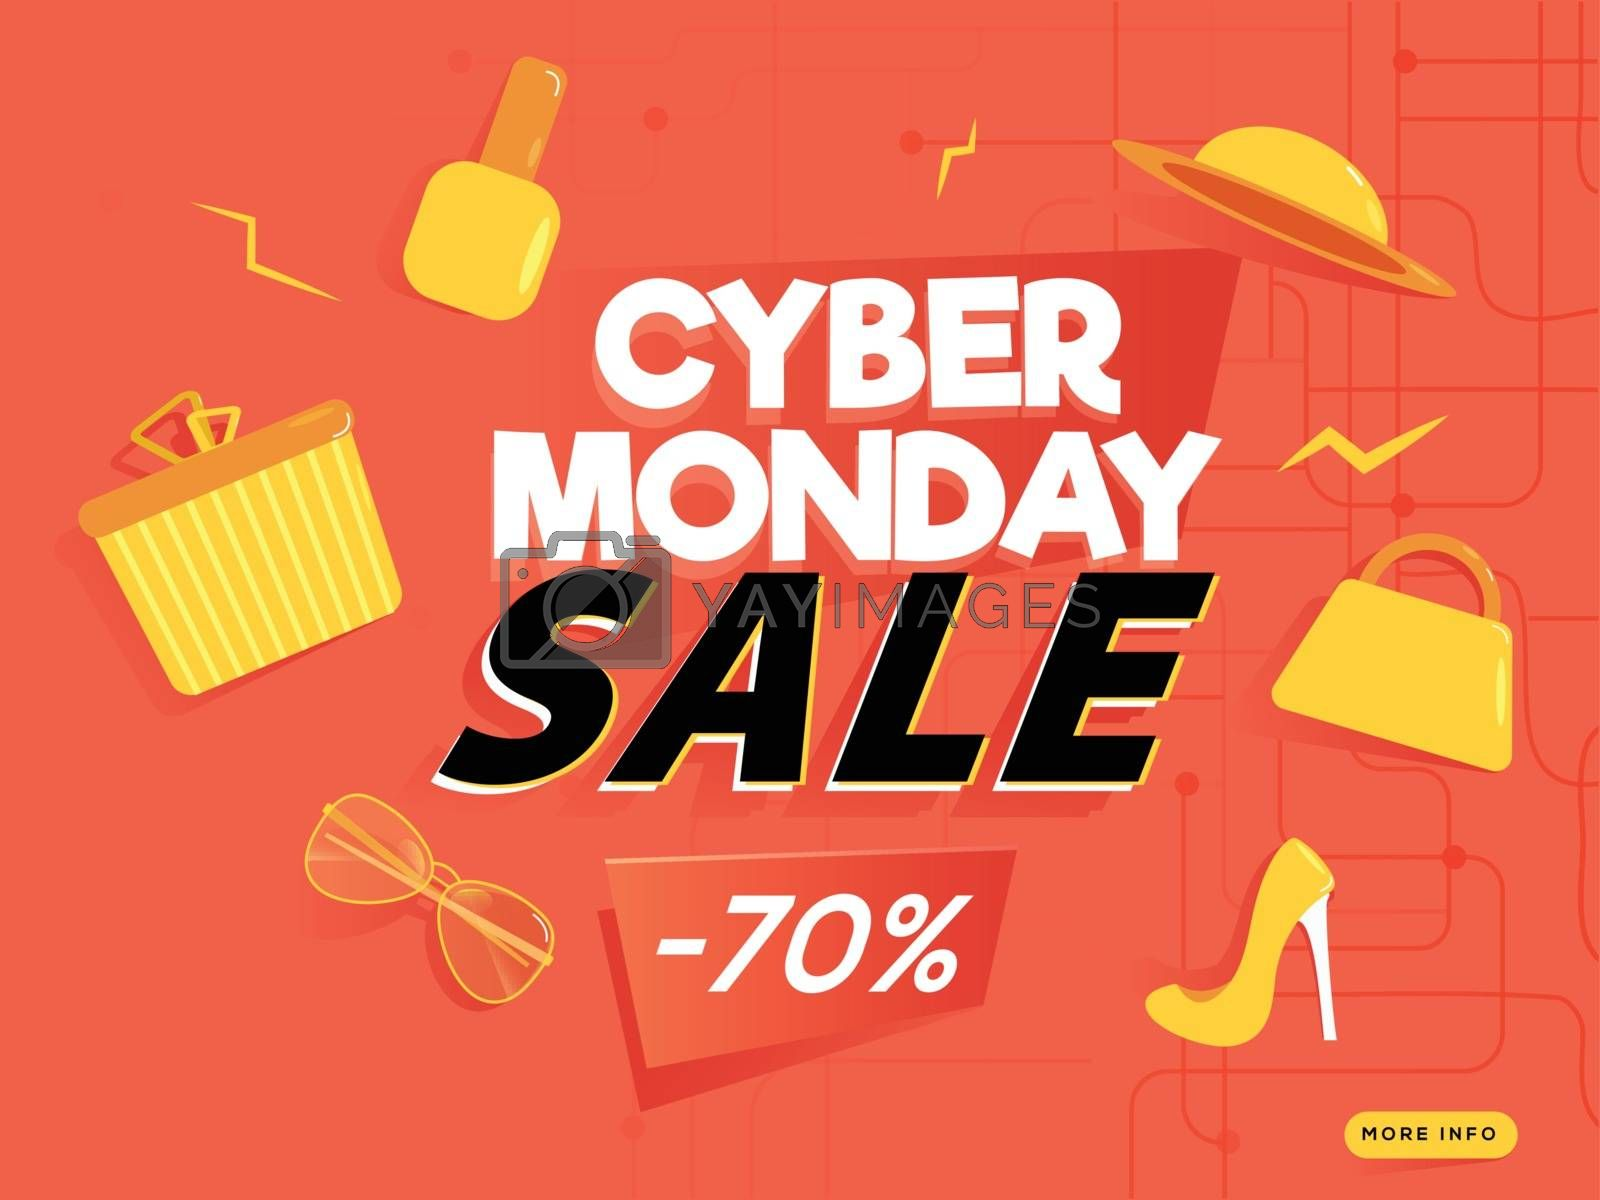 Cyber Monday Sale poster or banner design, 70% discount offer with shopping elements on orange background.